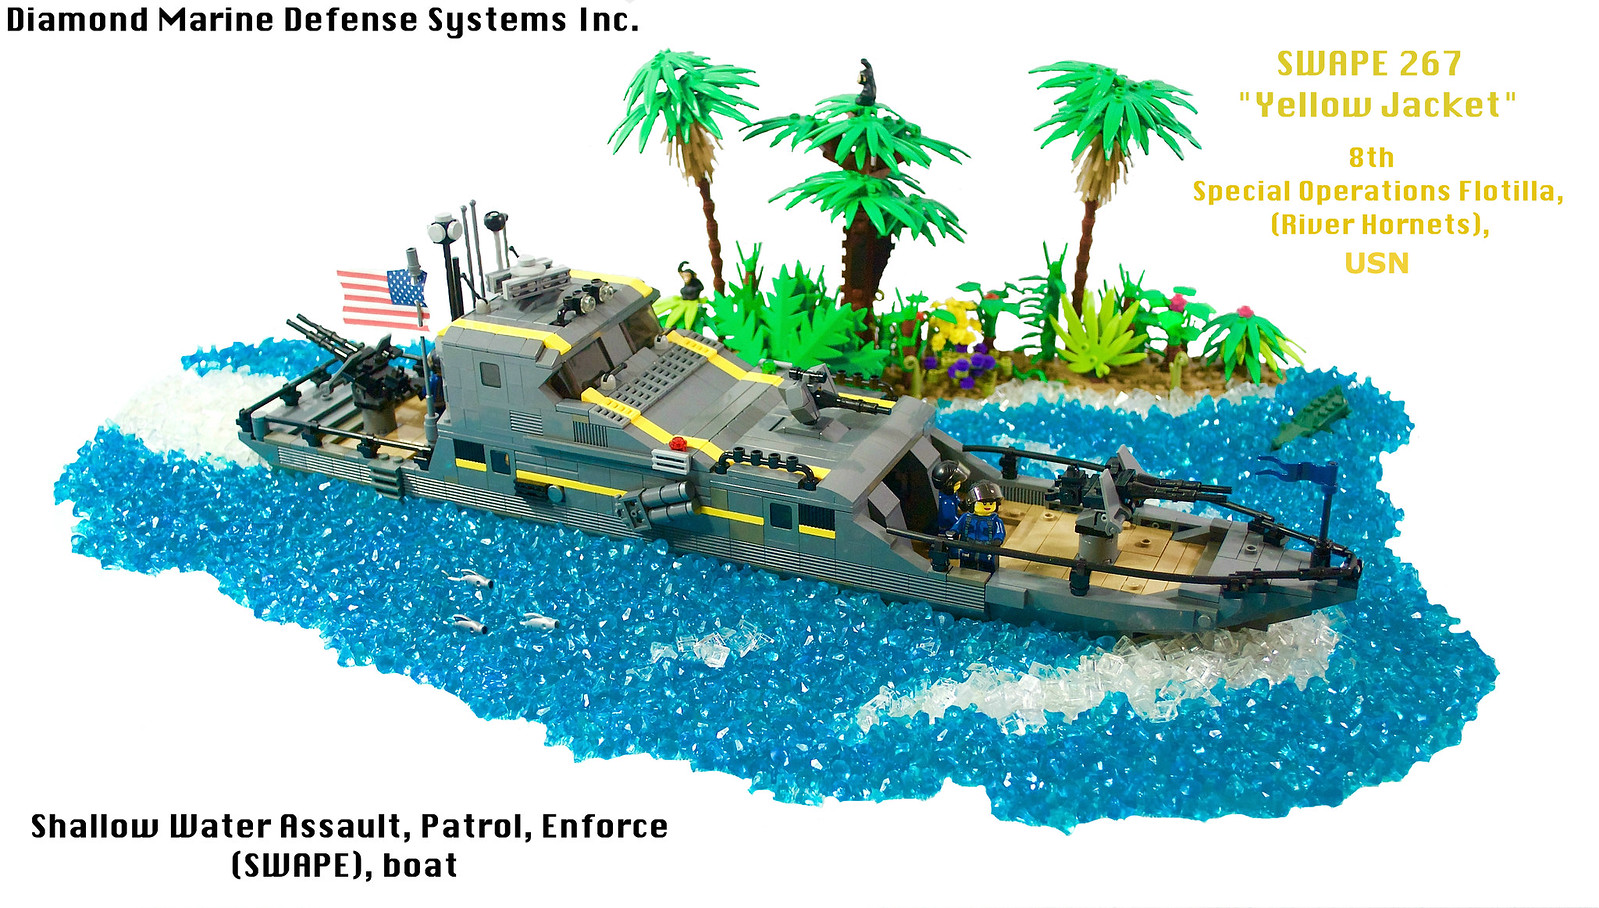 Shallow Water Assault Patrol Enforce (SWAPE) 267